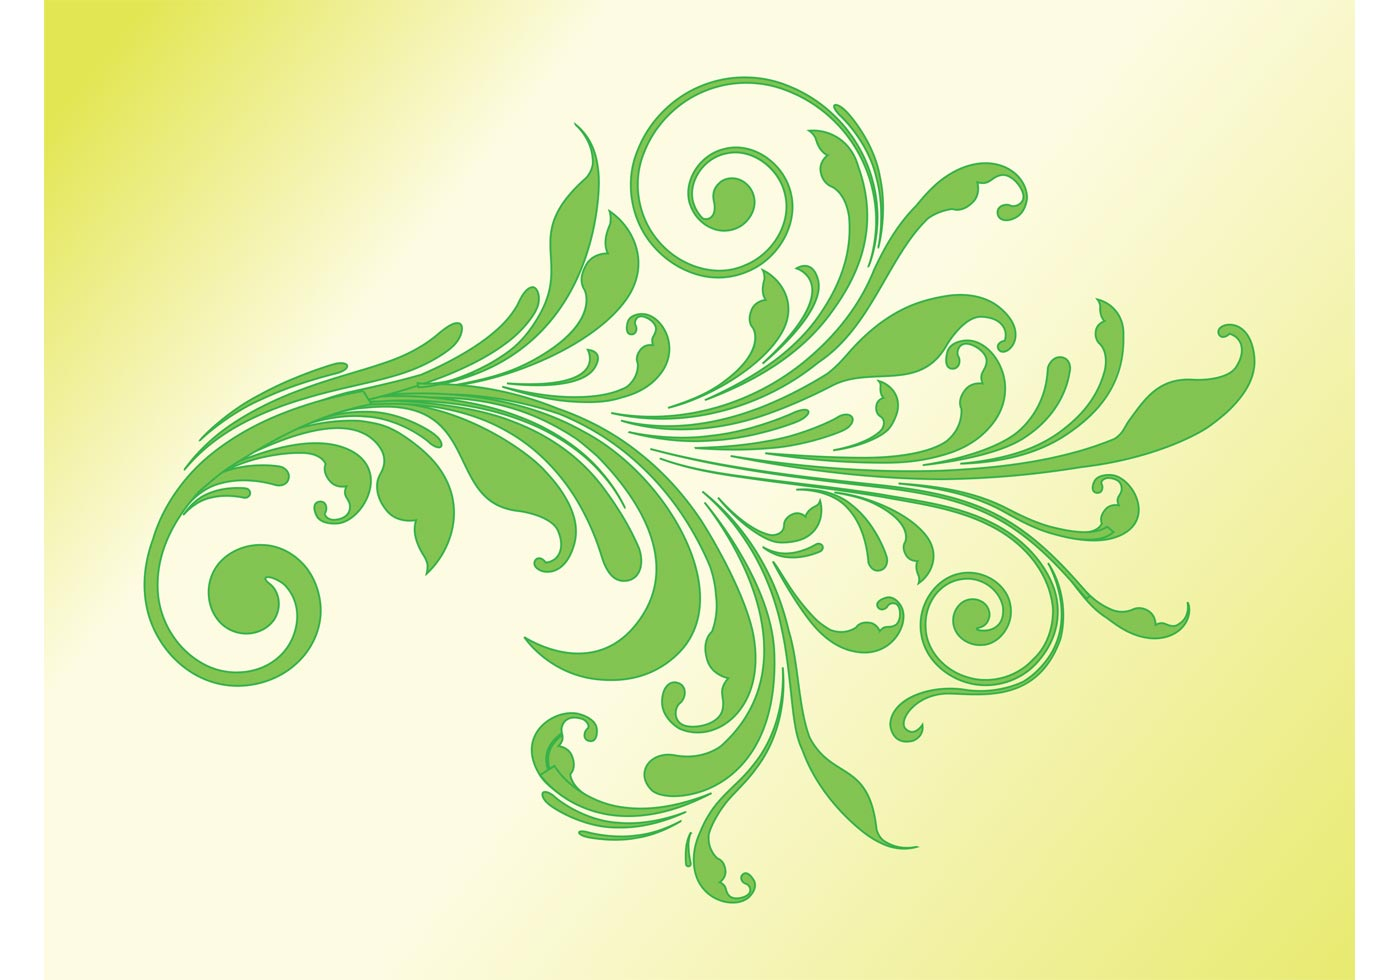 Floral Swirl - Download Free Vector Art, Stock Graphics ...